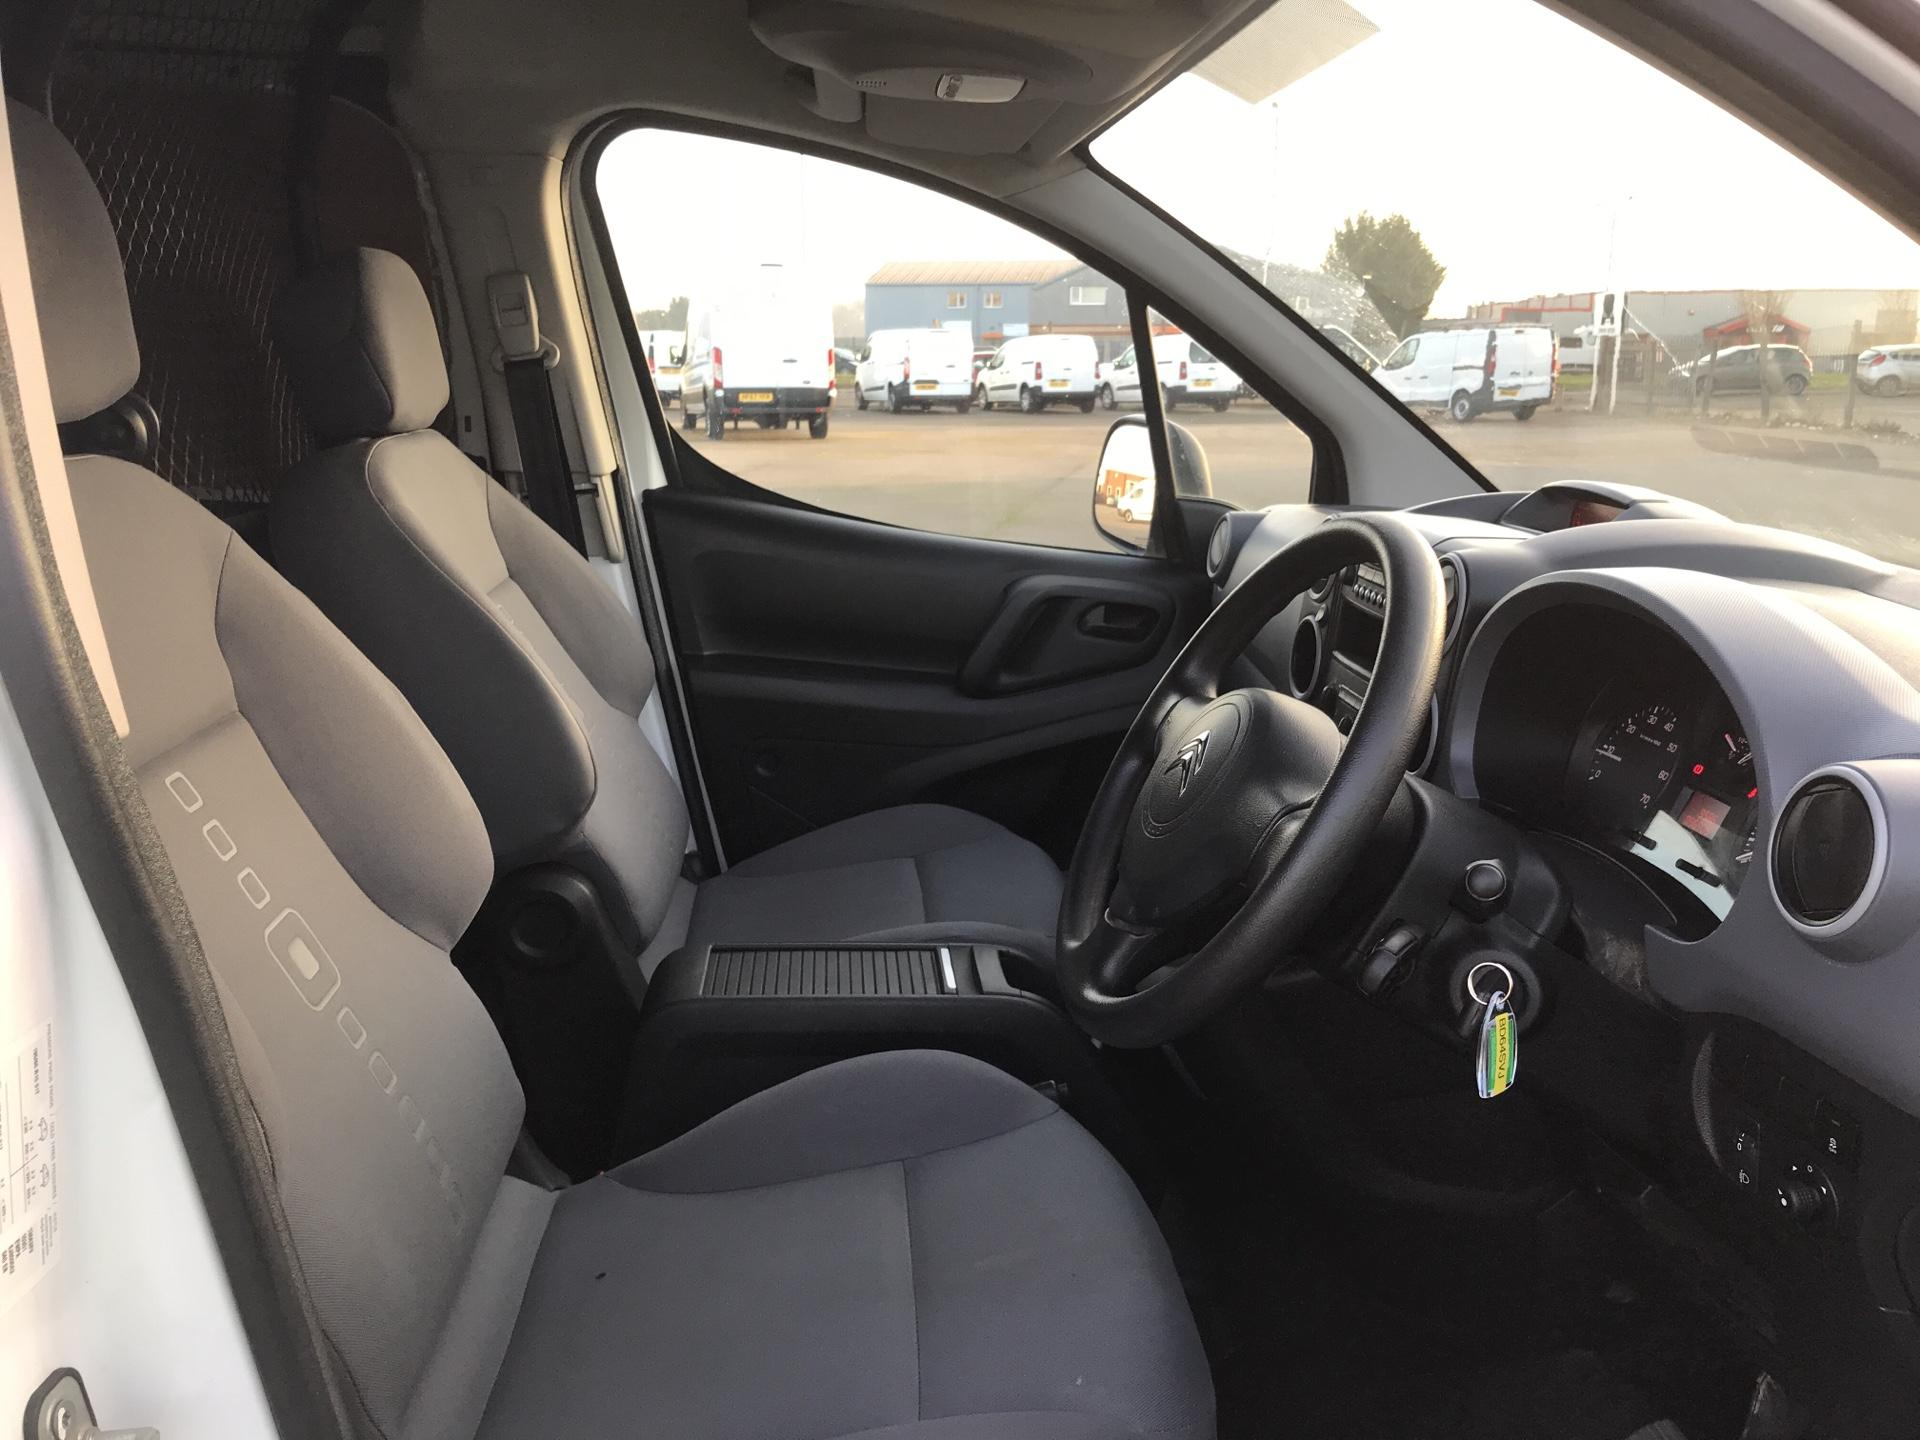 2014 Citroen Berlingo L1 DIESEL 1.6 HDI 625KG X 90PS (SLD) EURO 5. VALUE RANGE VEHICLE - CONDITION REFLECTED IN PRICE (BD64SVJ) Image 9